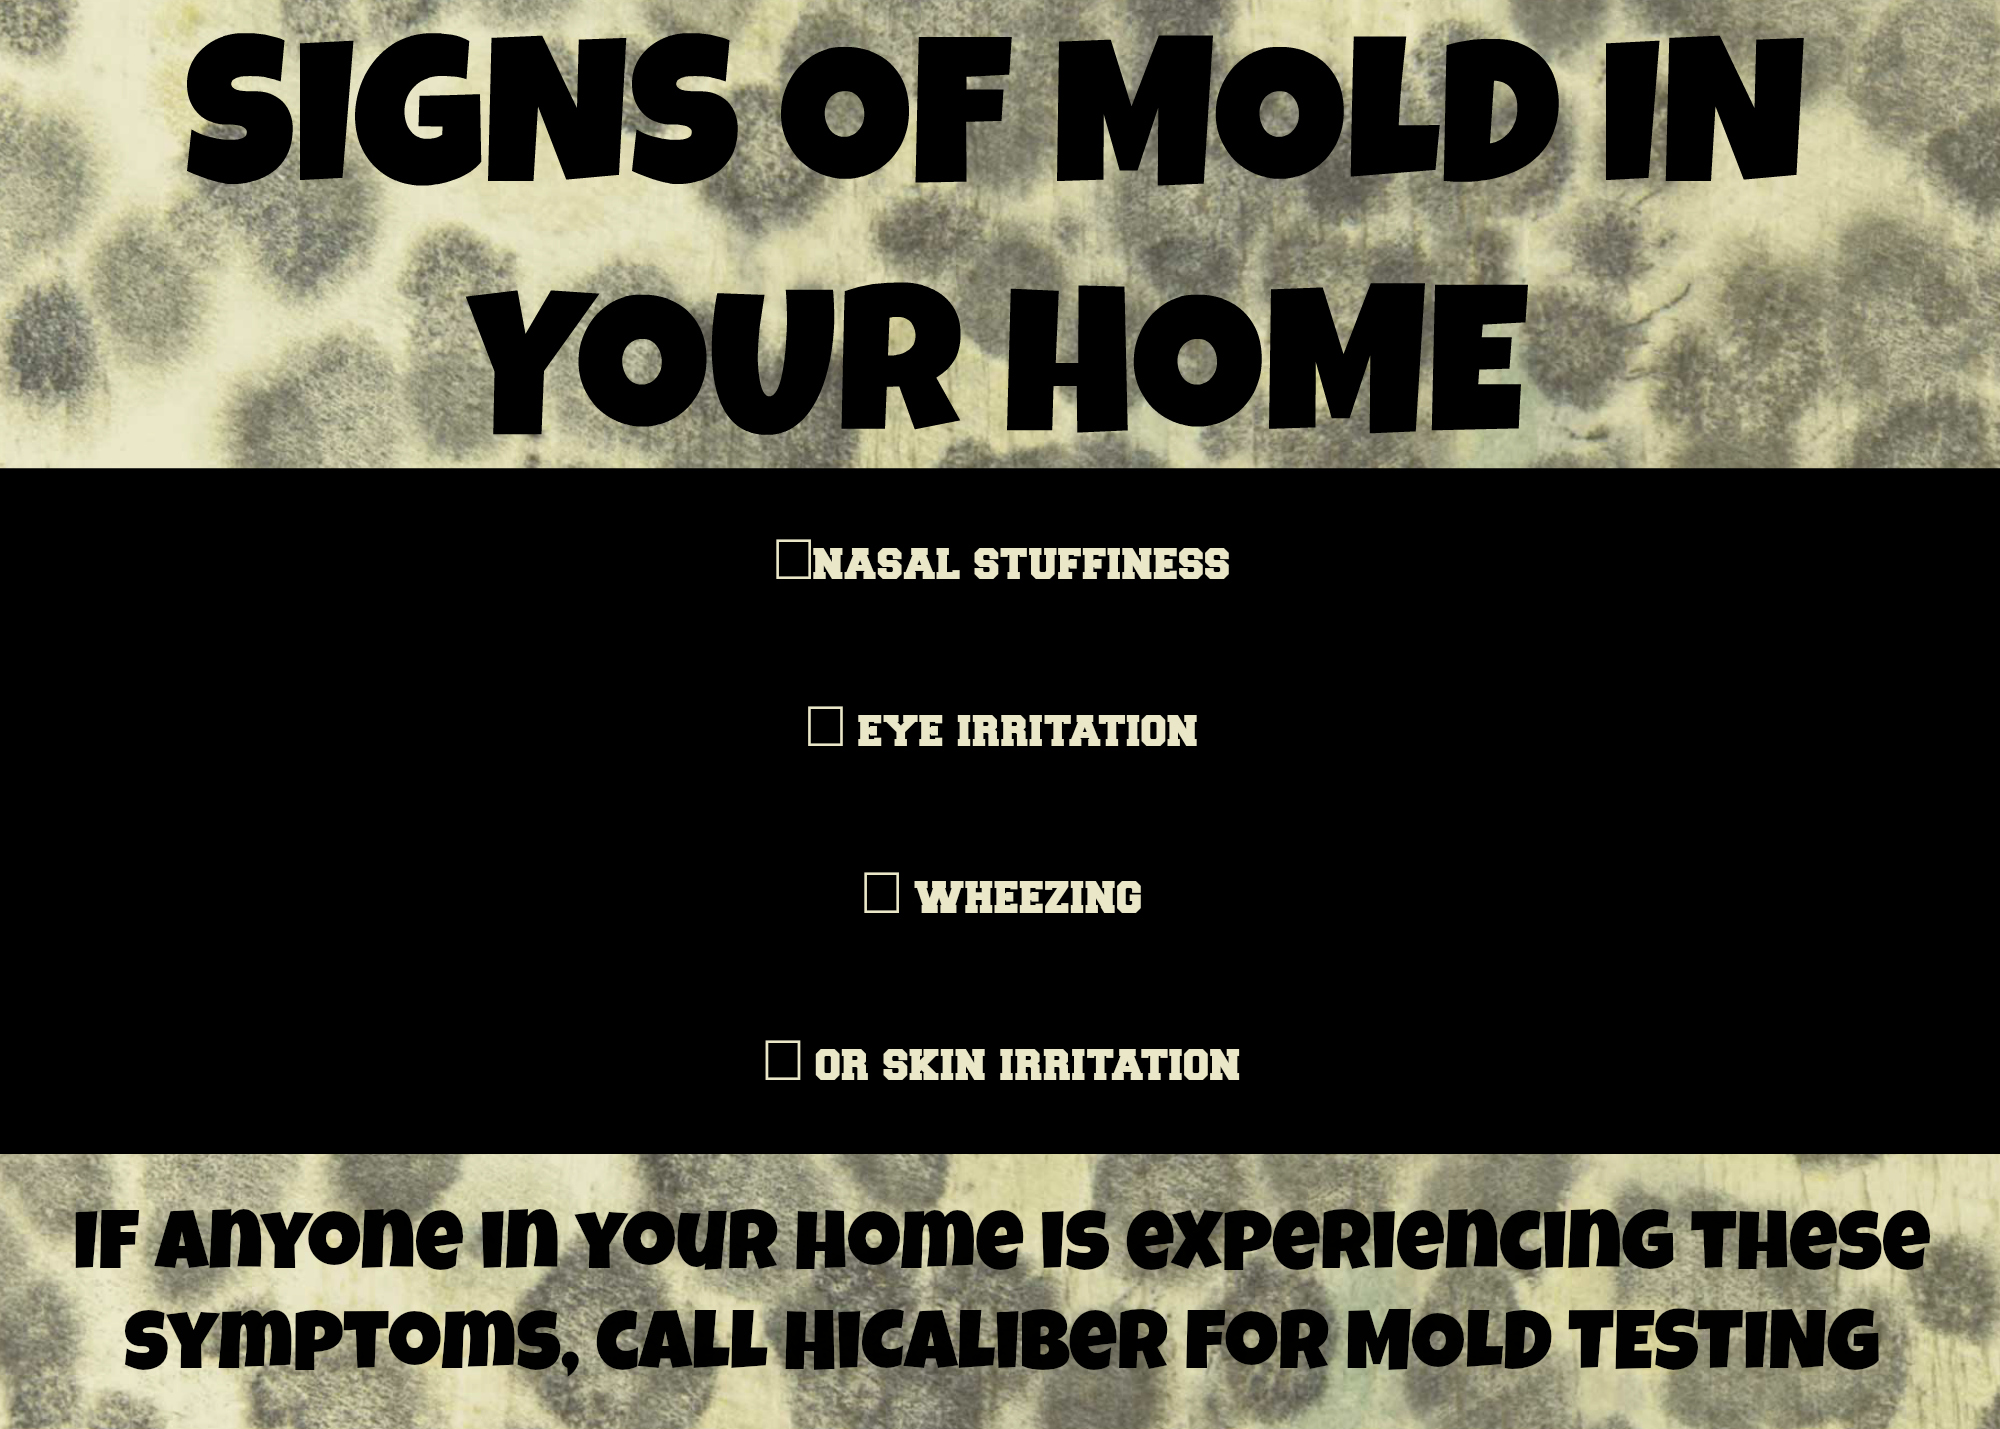 Mold Is Not Something That Should Be Taken Lightly It Can Cause Severe Health Issues If Dealt With By A Professional The Proper Equipment